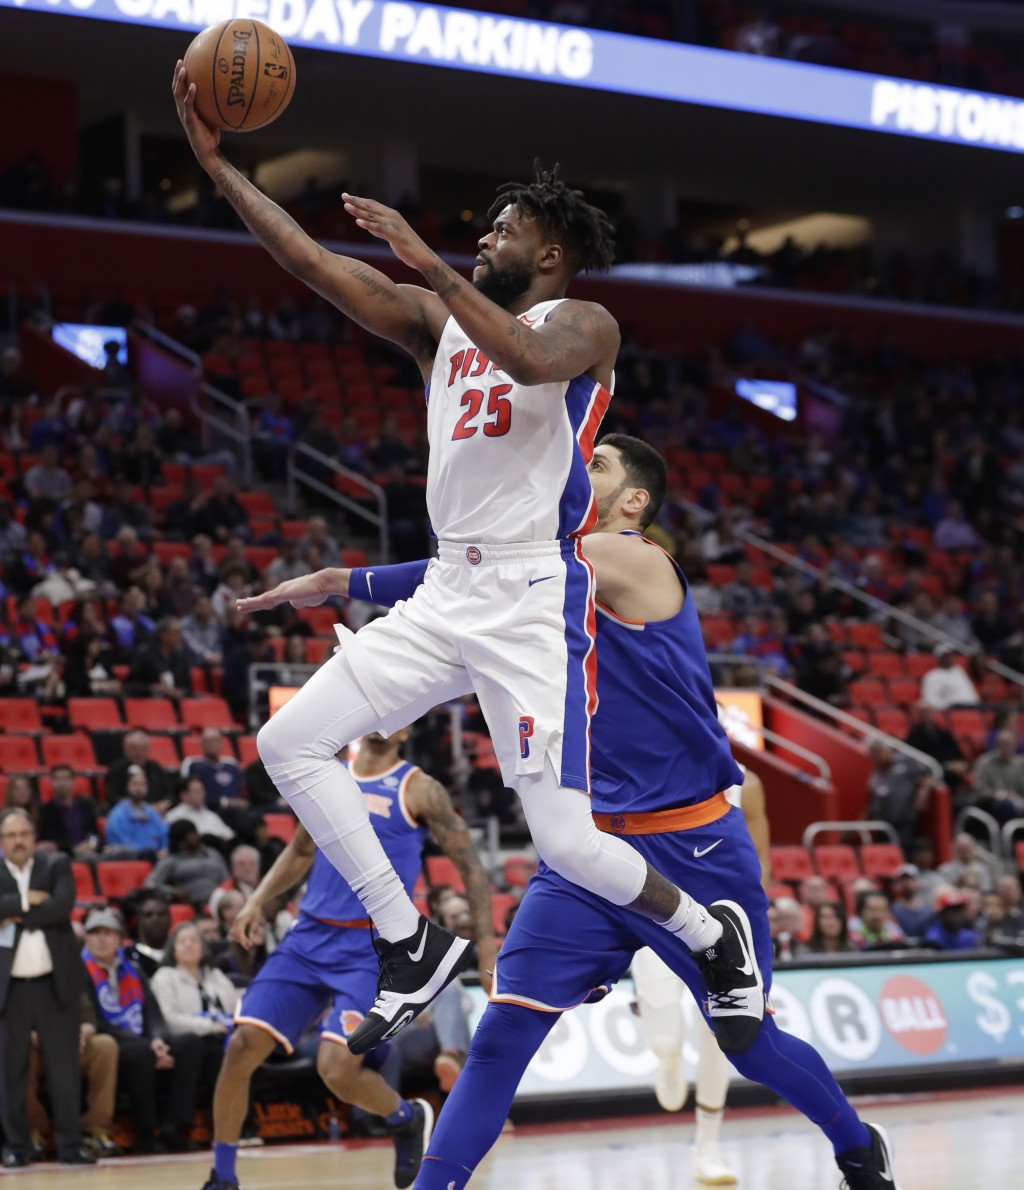 Detroit Pistons forward Reggie Bullock (25) makes a layup while defended by New York Knicks center Enes Kanter (00) during the first half of an NBA ba...